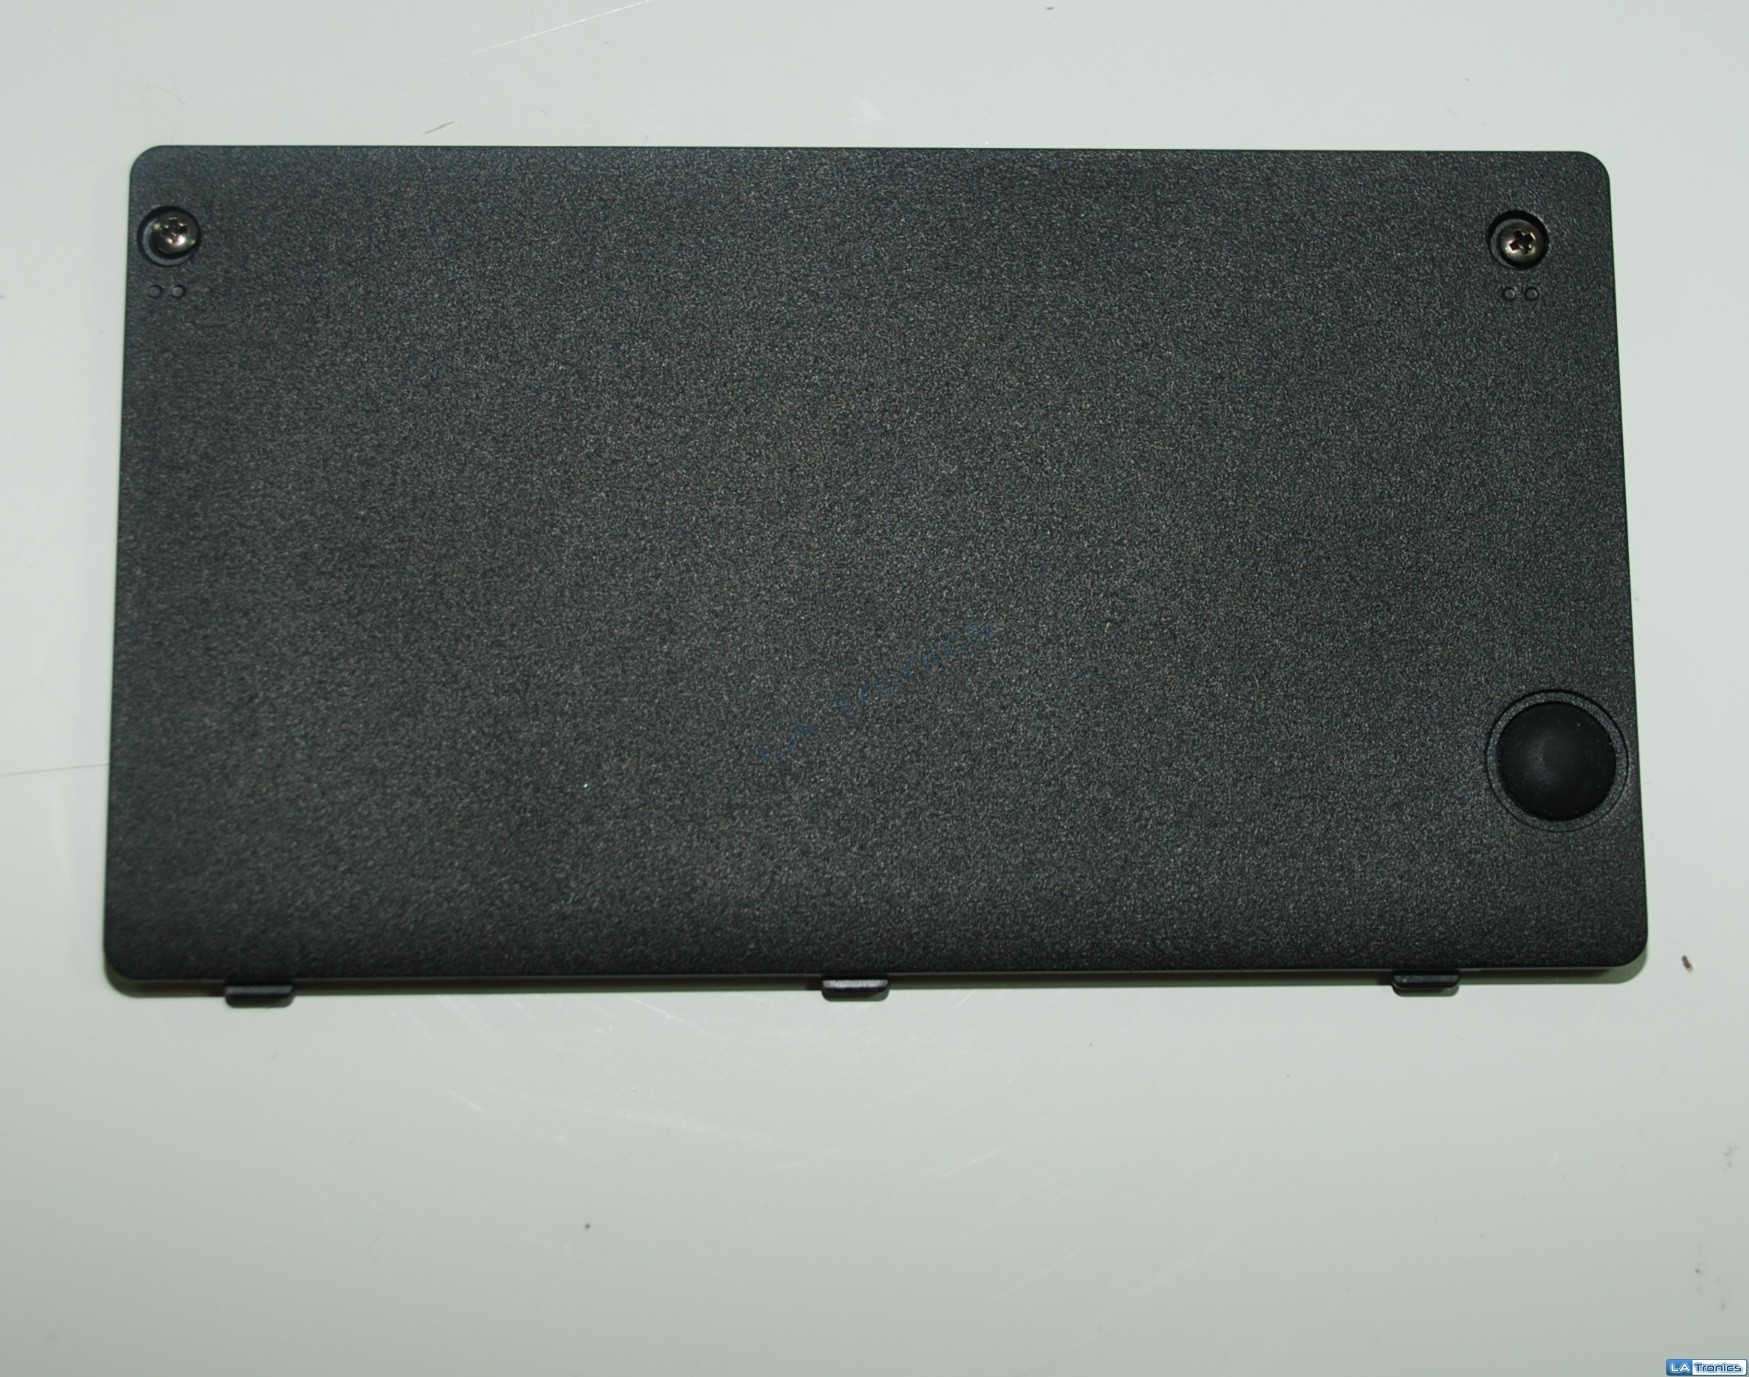 Genuine Sony Vaio Fit SVF14 SVF142190x Series HDD Hard Drive Cover Door 3KHK800